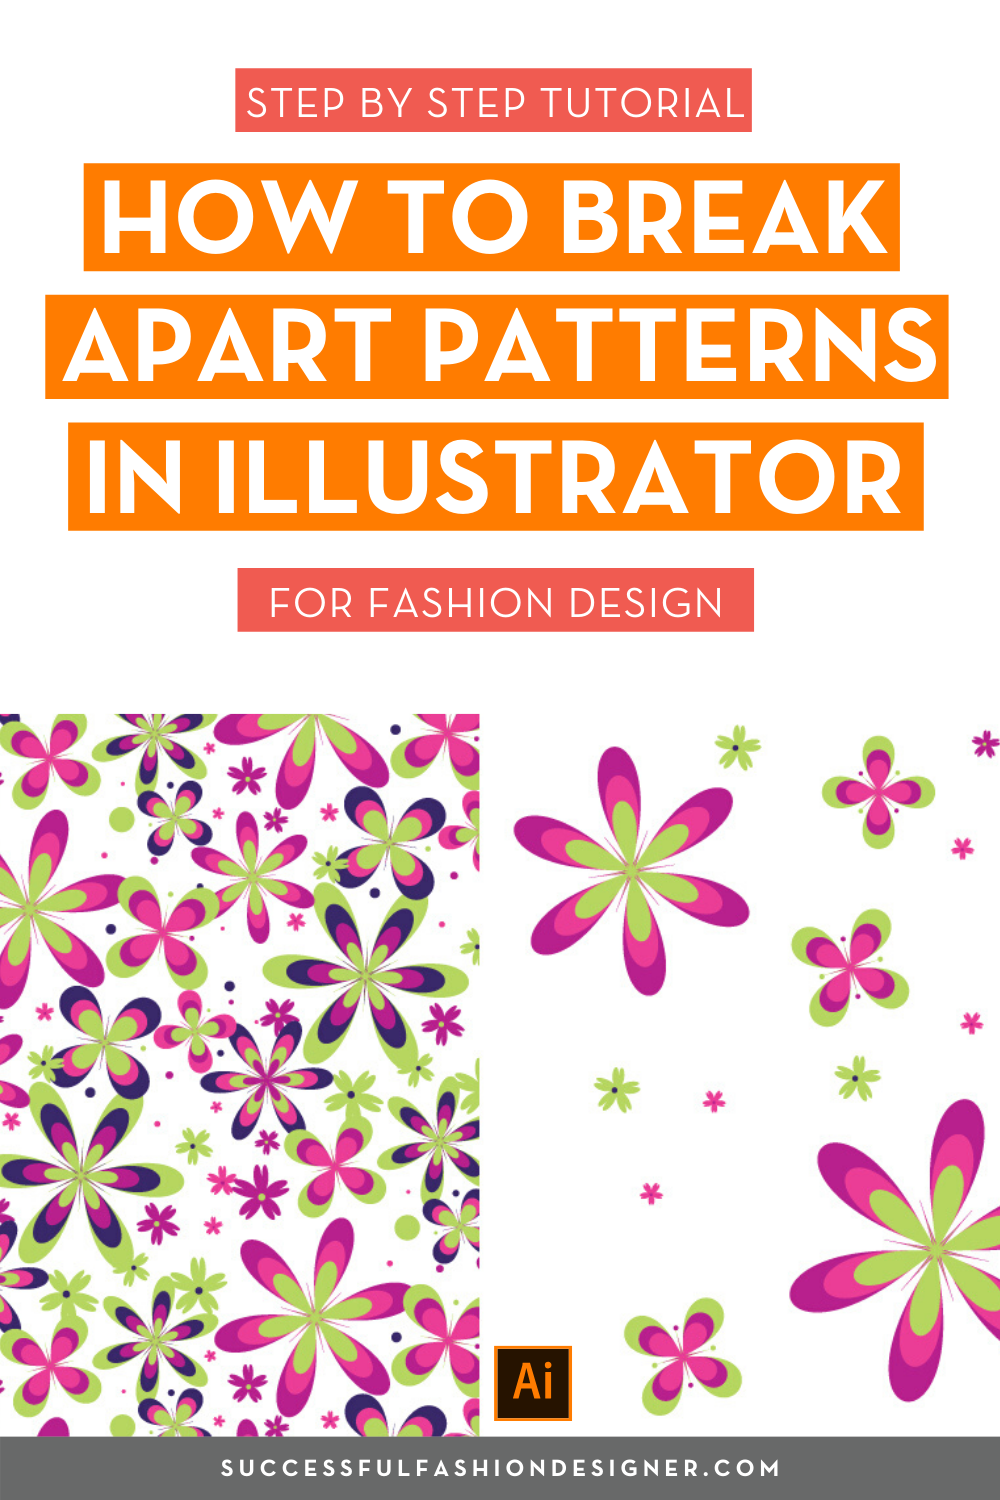 How To Break Apart Patterns In Illustrator In 2020 Tutorial